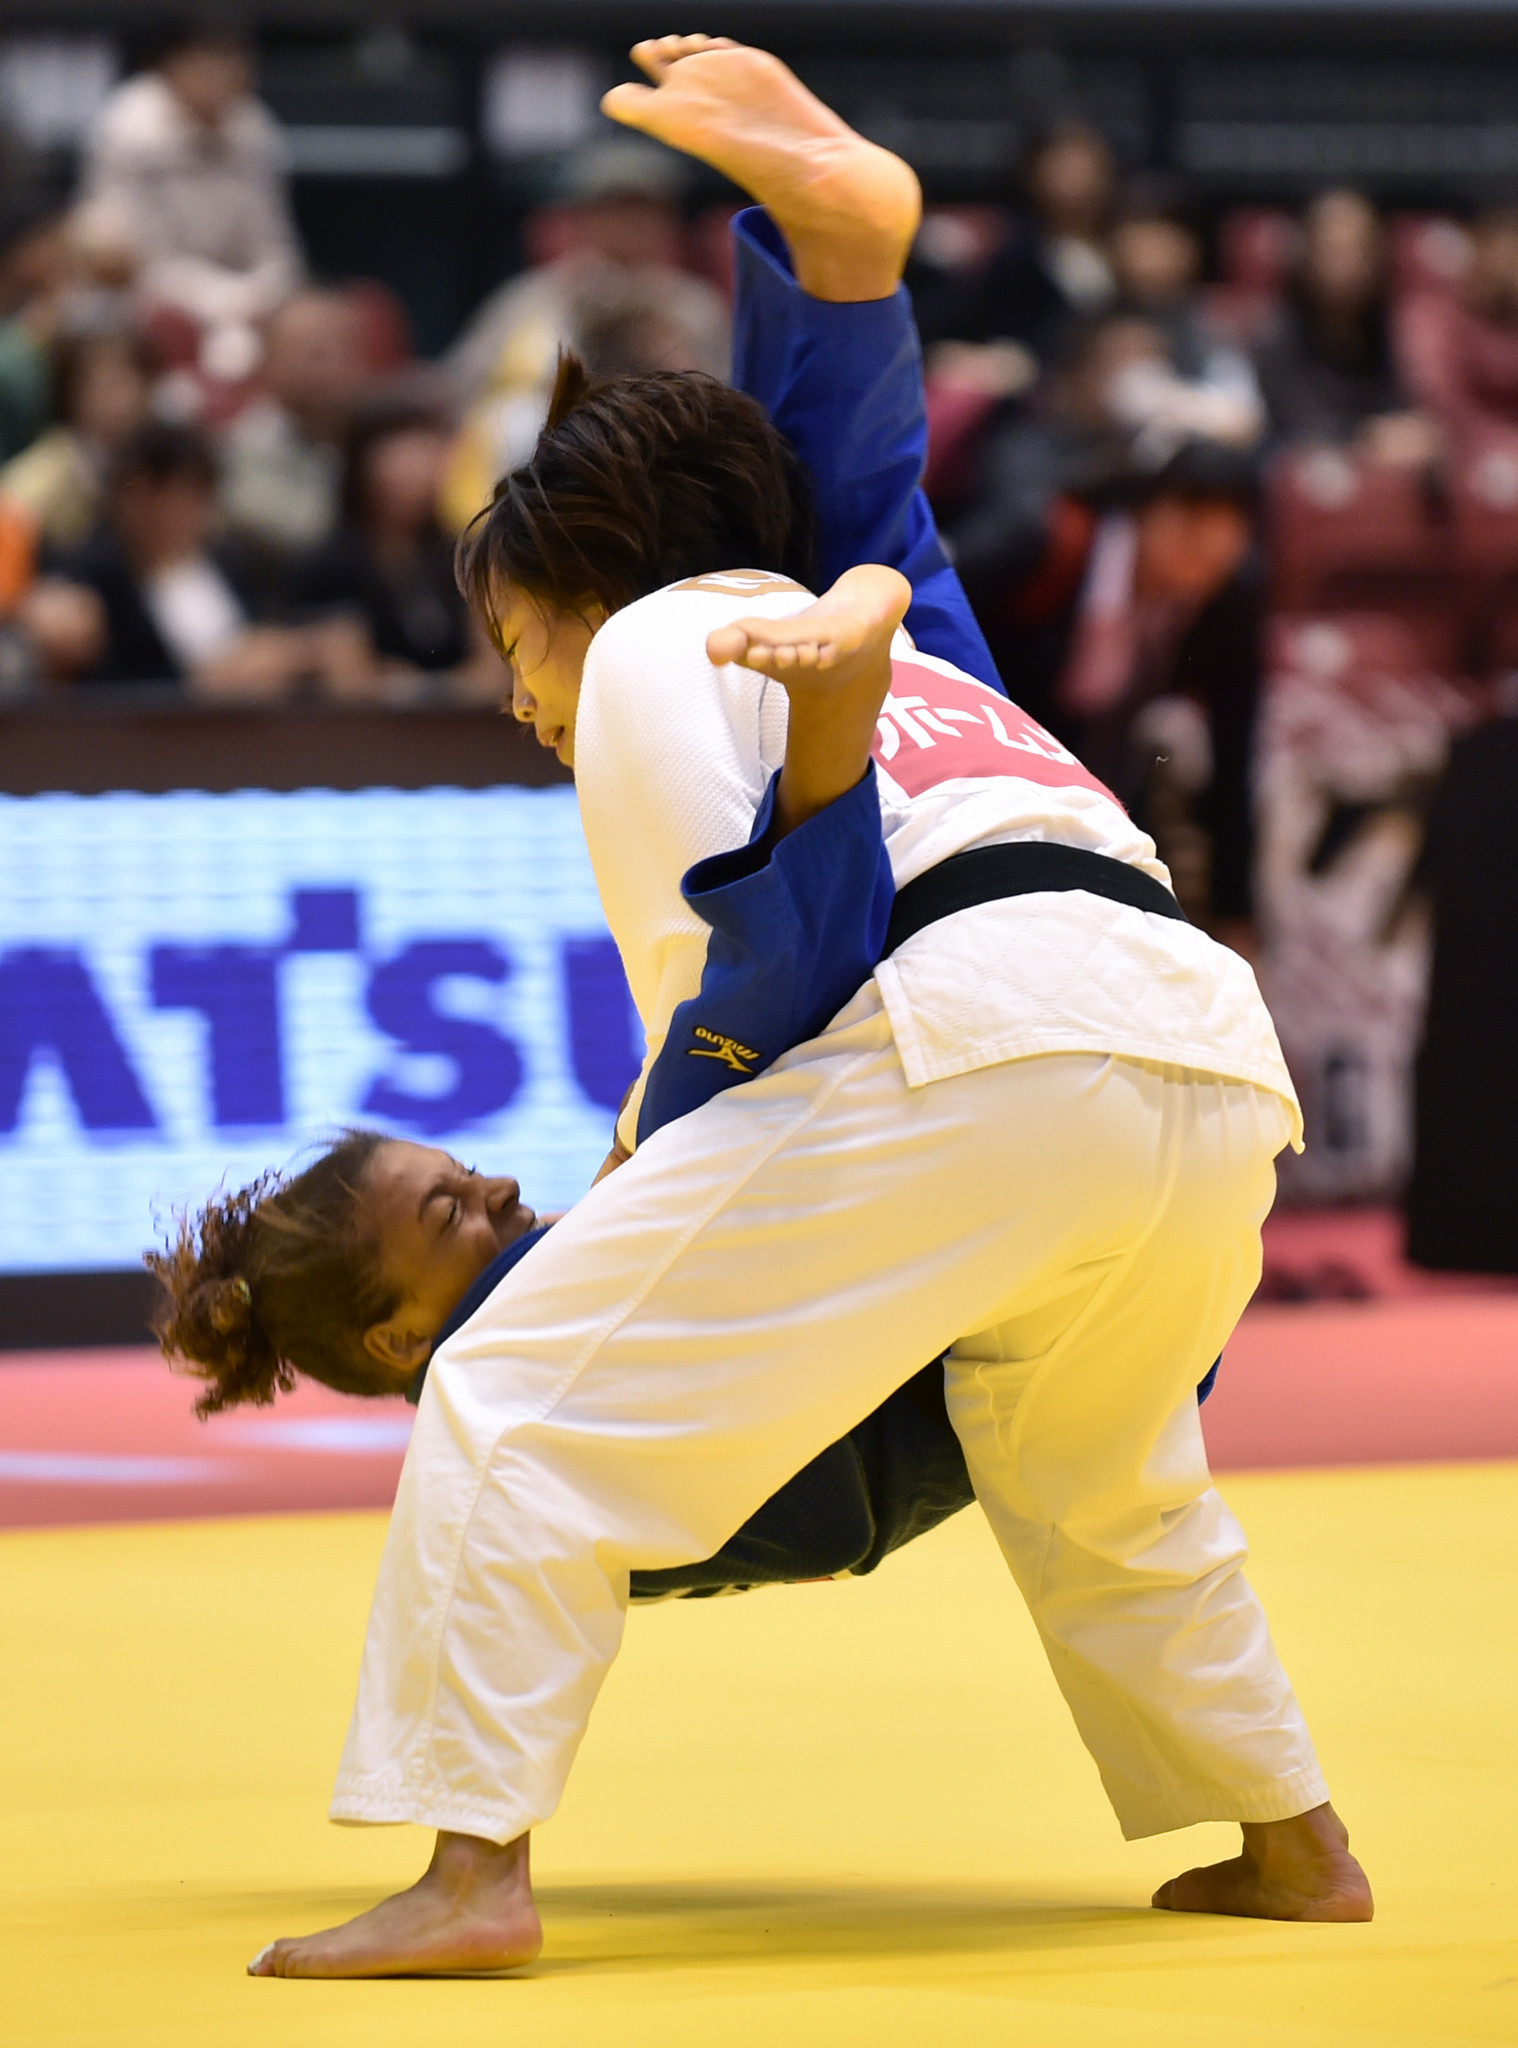 World Judo Day is celebrated every year on October 28 ©Getty Images